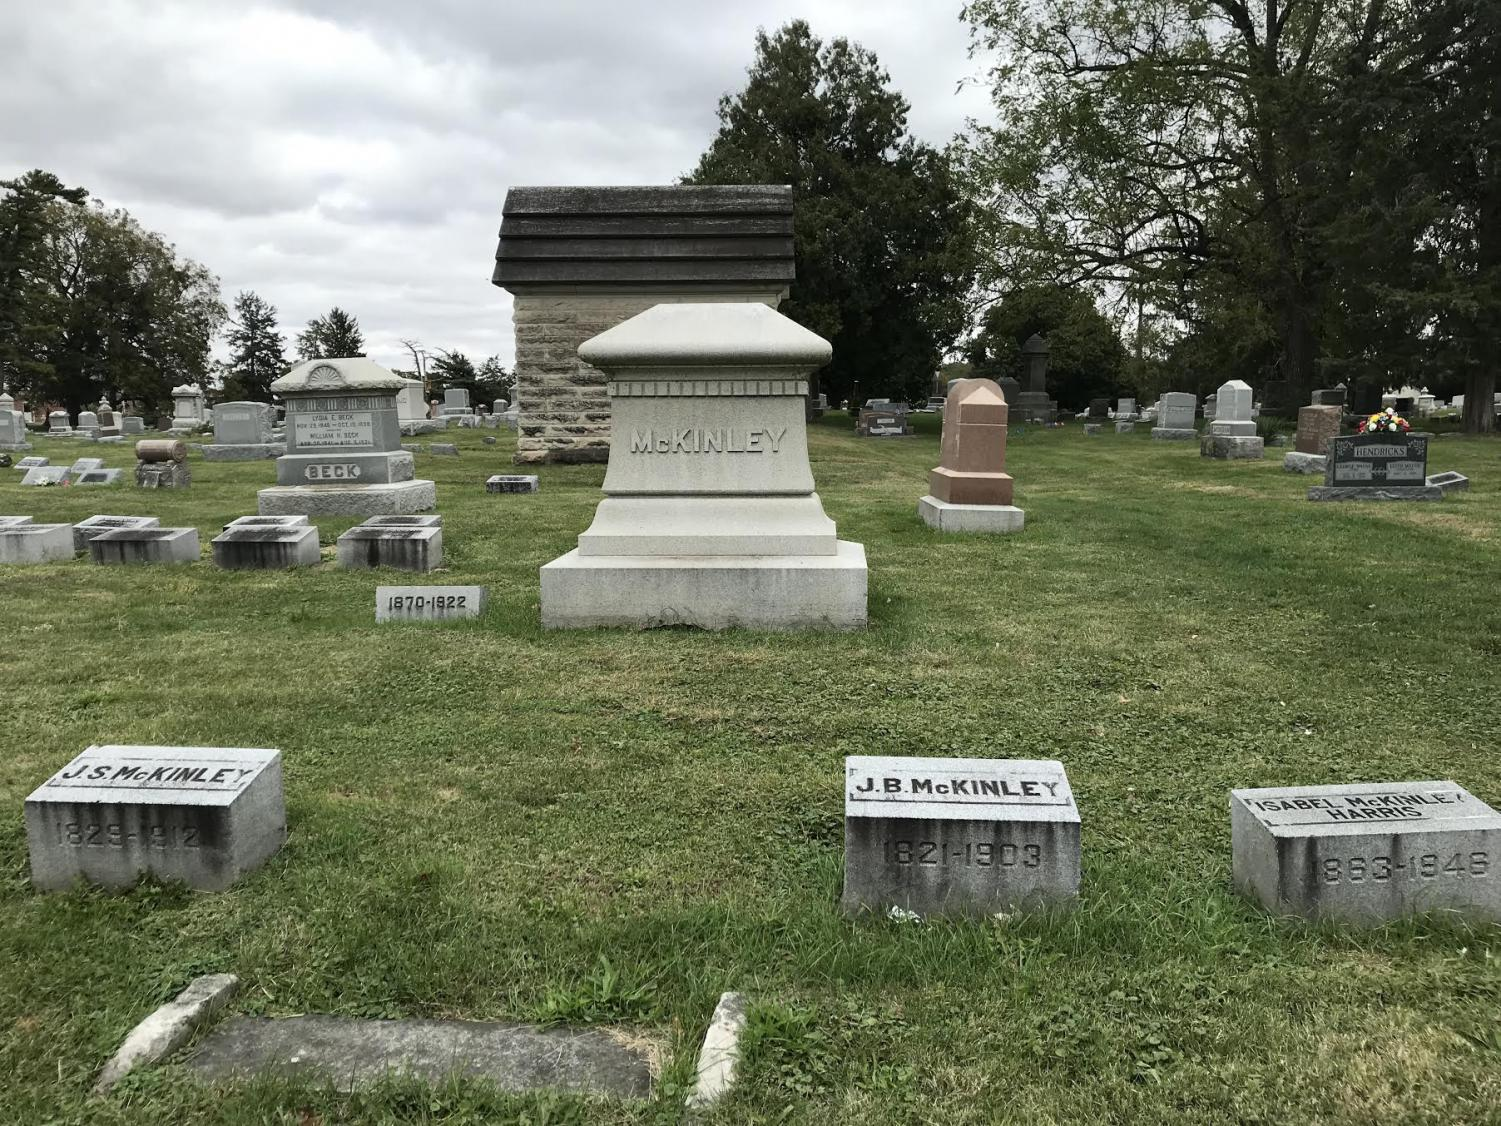 Memorials and tombstones of significant figures in University history lay within Mount Hope Cemetery on Saturday. The cemetery is located on Pennsylvania Avenue in Champaign.